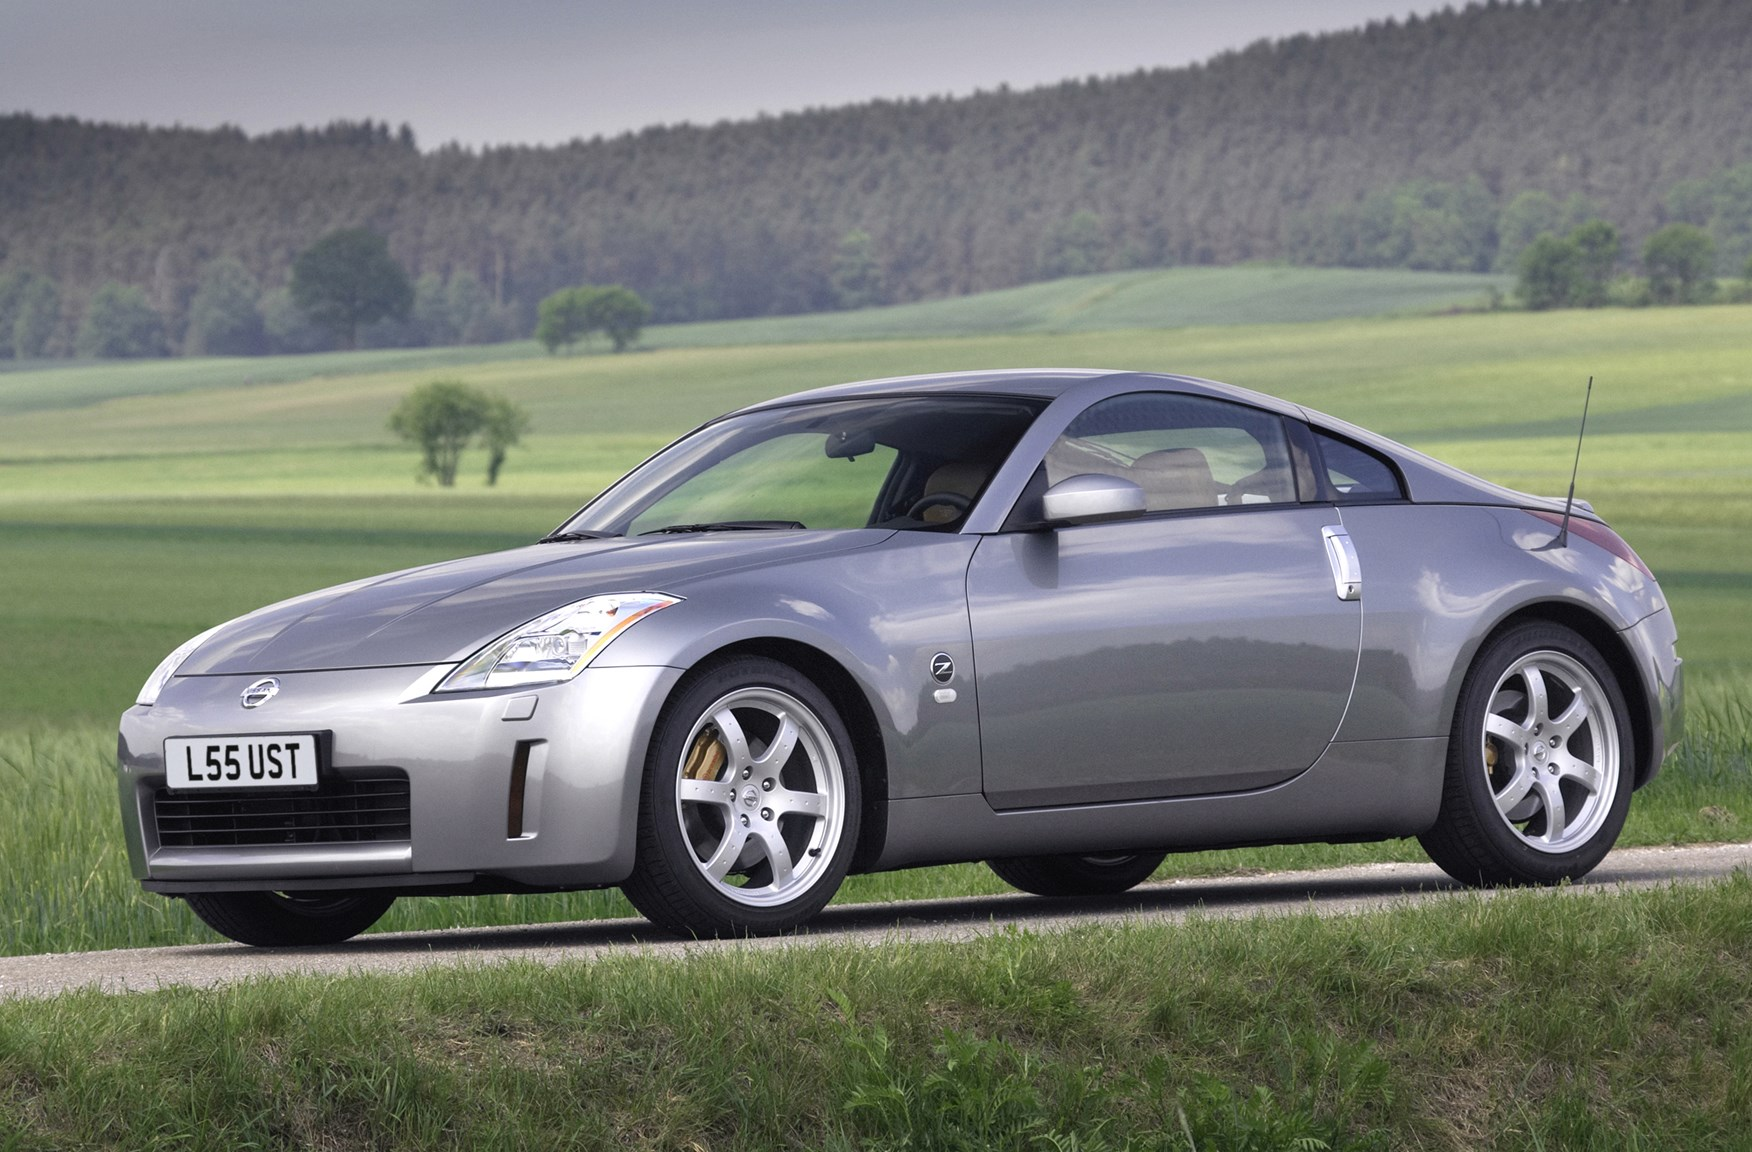 Used Nissan 350Z Coupe (2003 - 2010) Review | Parkers